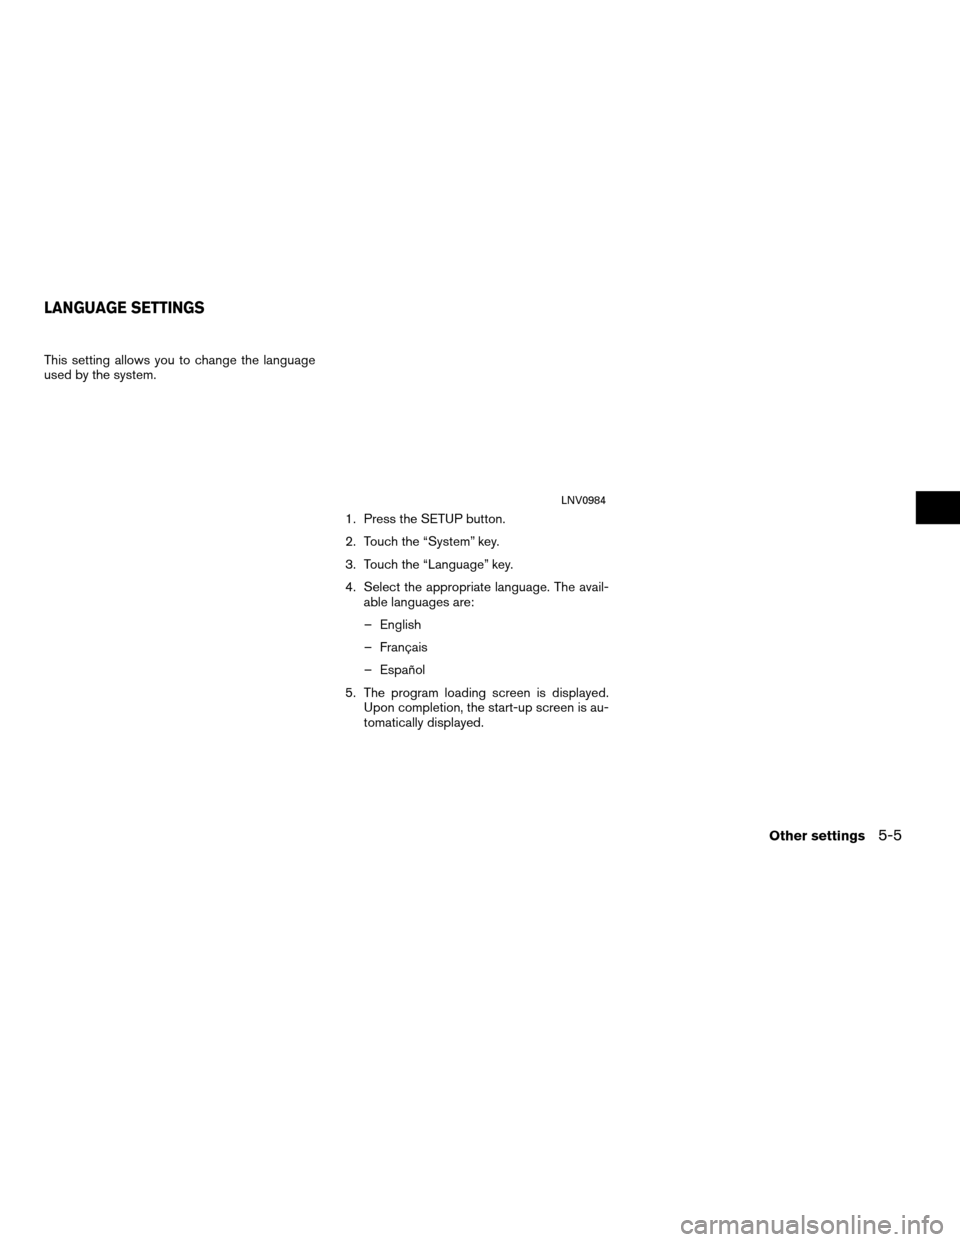 NISSAN CUBE 2011 3.G LC Navigation Manual, Page 65